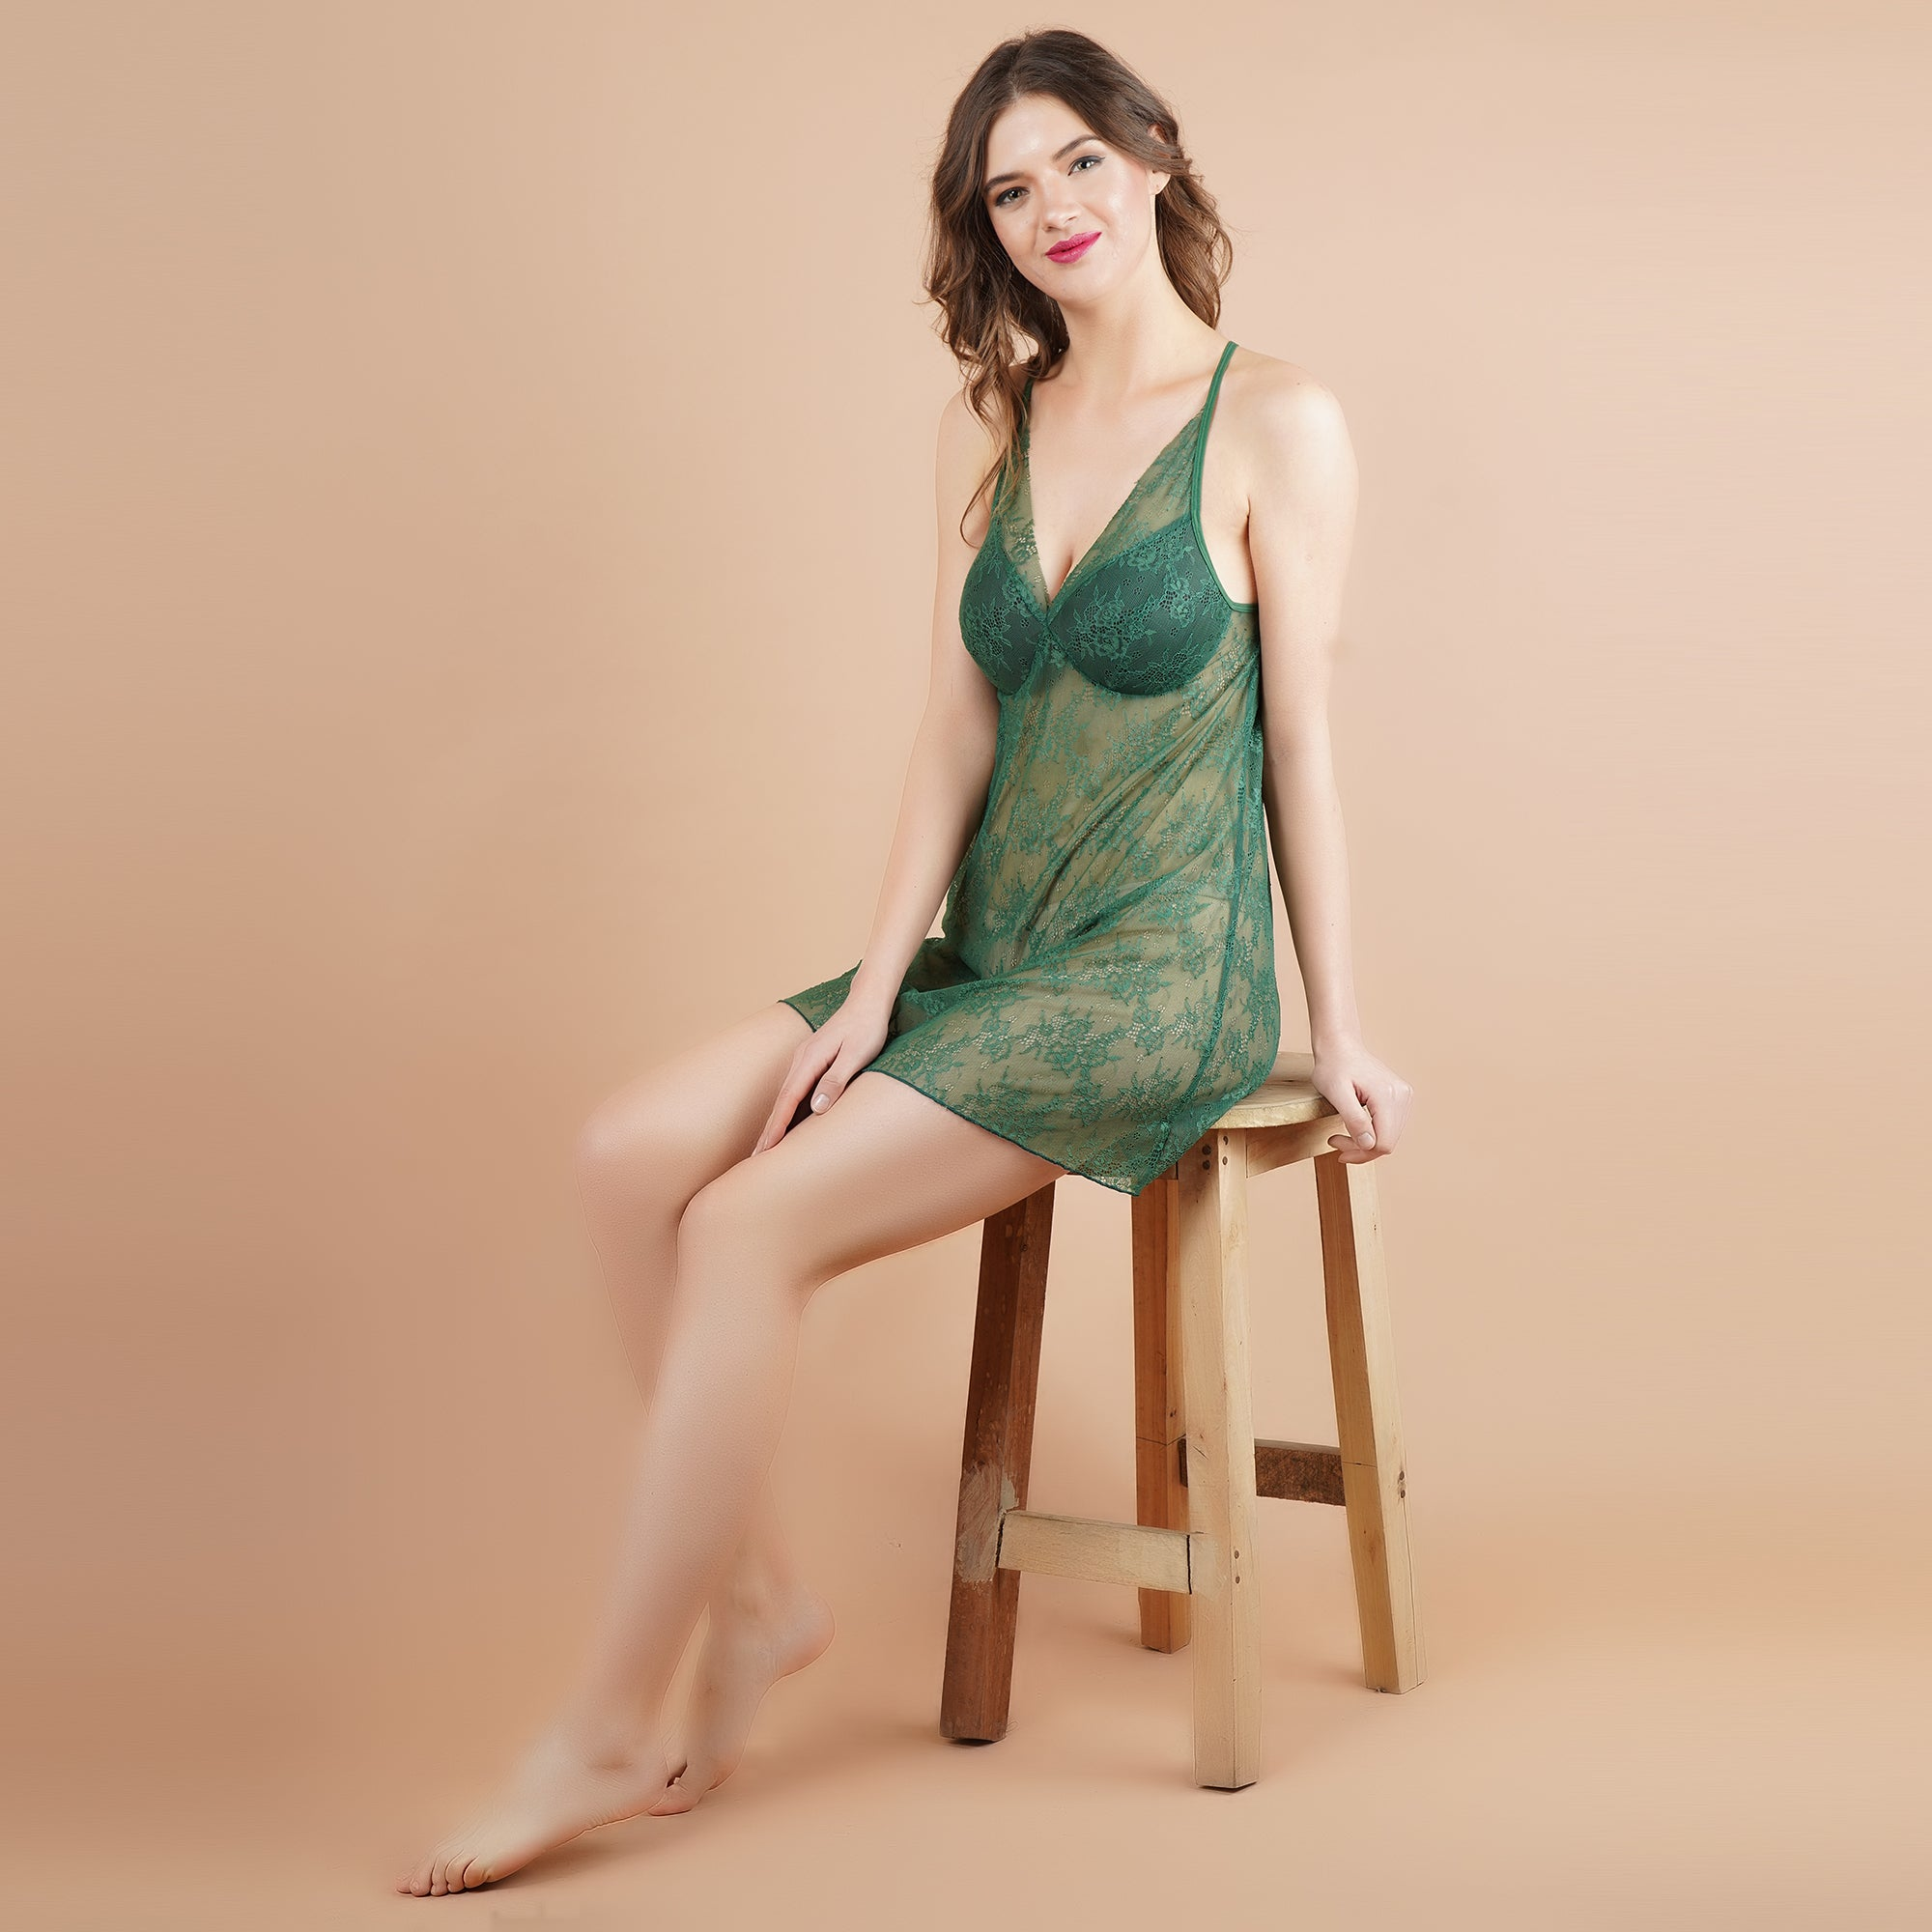 Ficuster V-Neck Green Color Padded Babydoll Nightwear